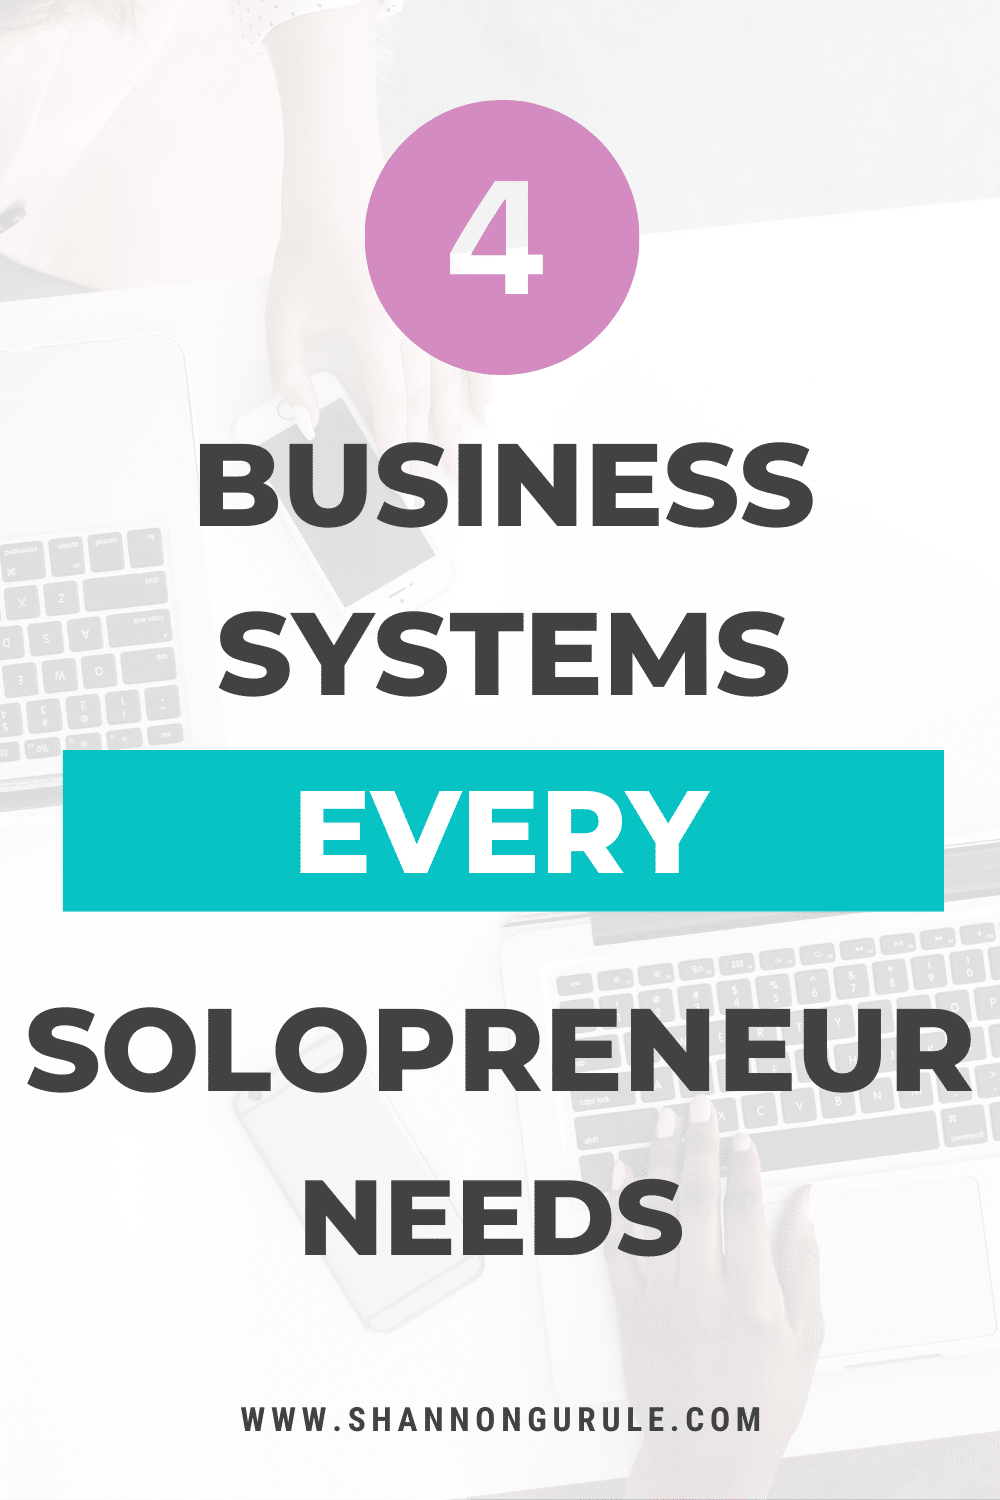 Business Systems Every Solopreneur Needs